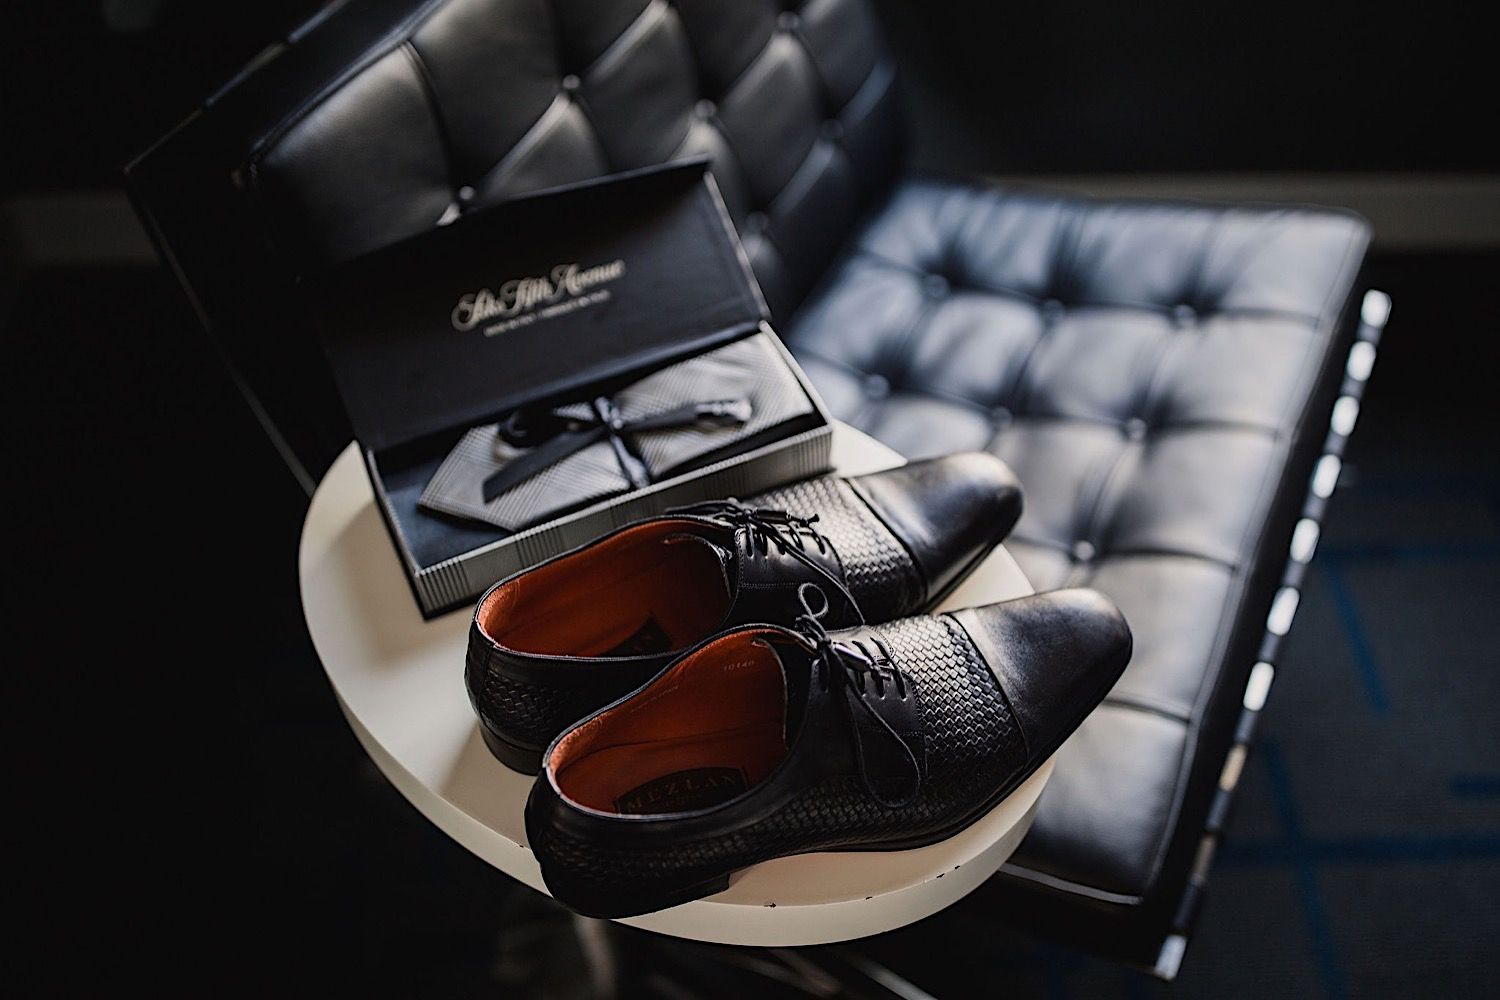 Groom's wedding shoes sitting on a table